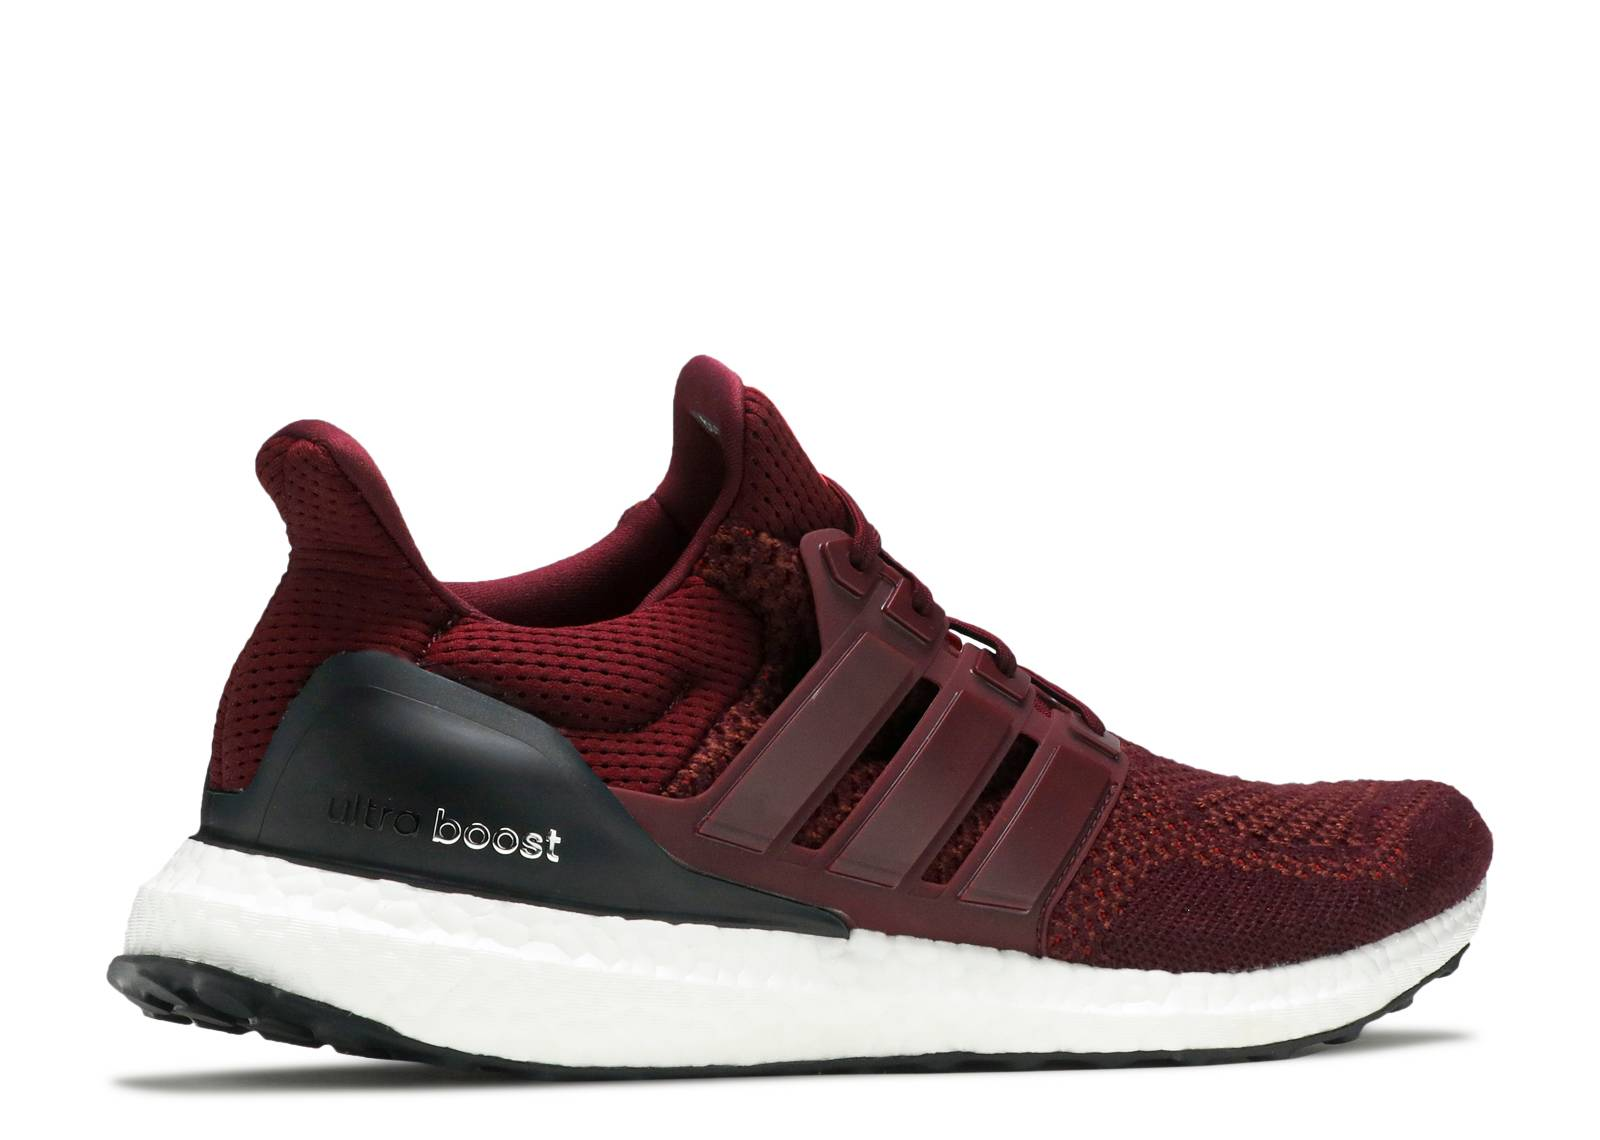 1bcc360ae8b85 spain ultra boost adidas af5836 burgundy maroon flight club ebd5f 7ecd5